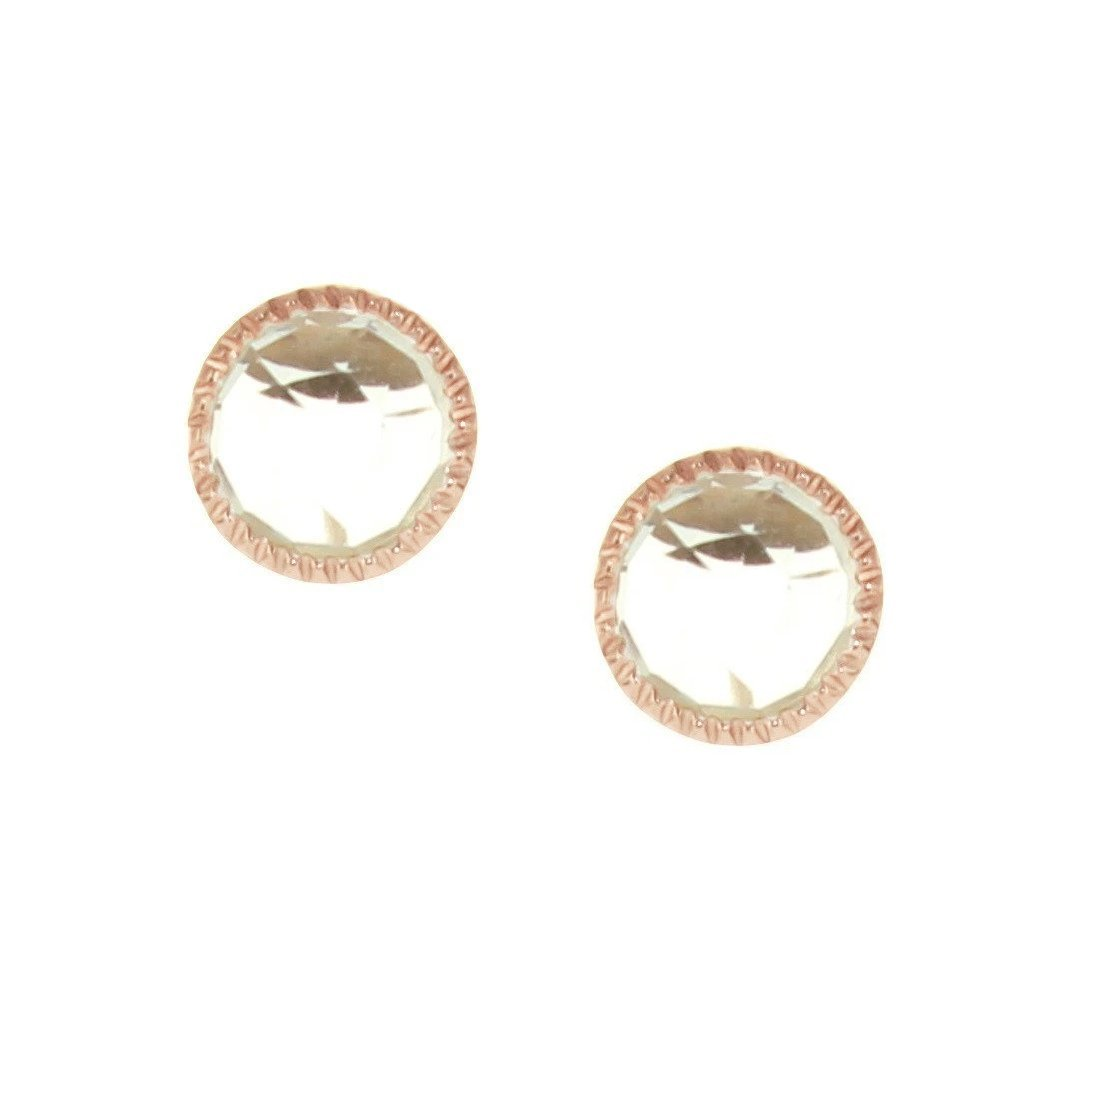 MINI ACCEPT STUD EARRINGS - WHITE TOPAZ & ROSE GOLD - SO PRETTY CARA COTTER